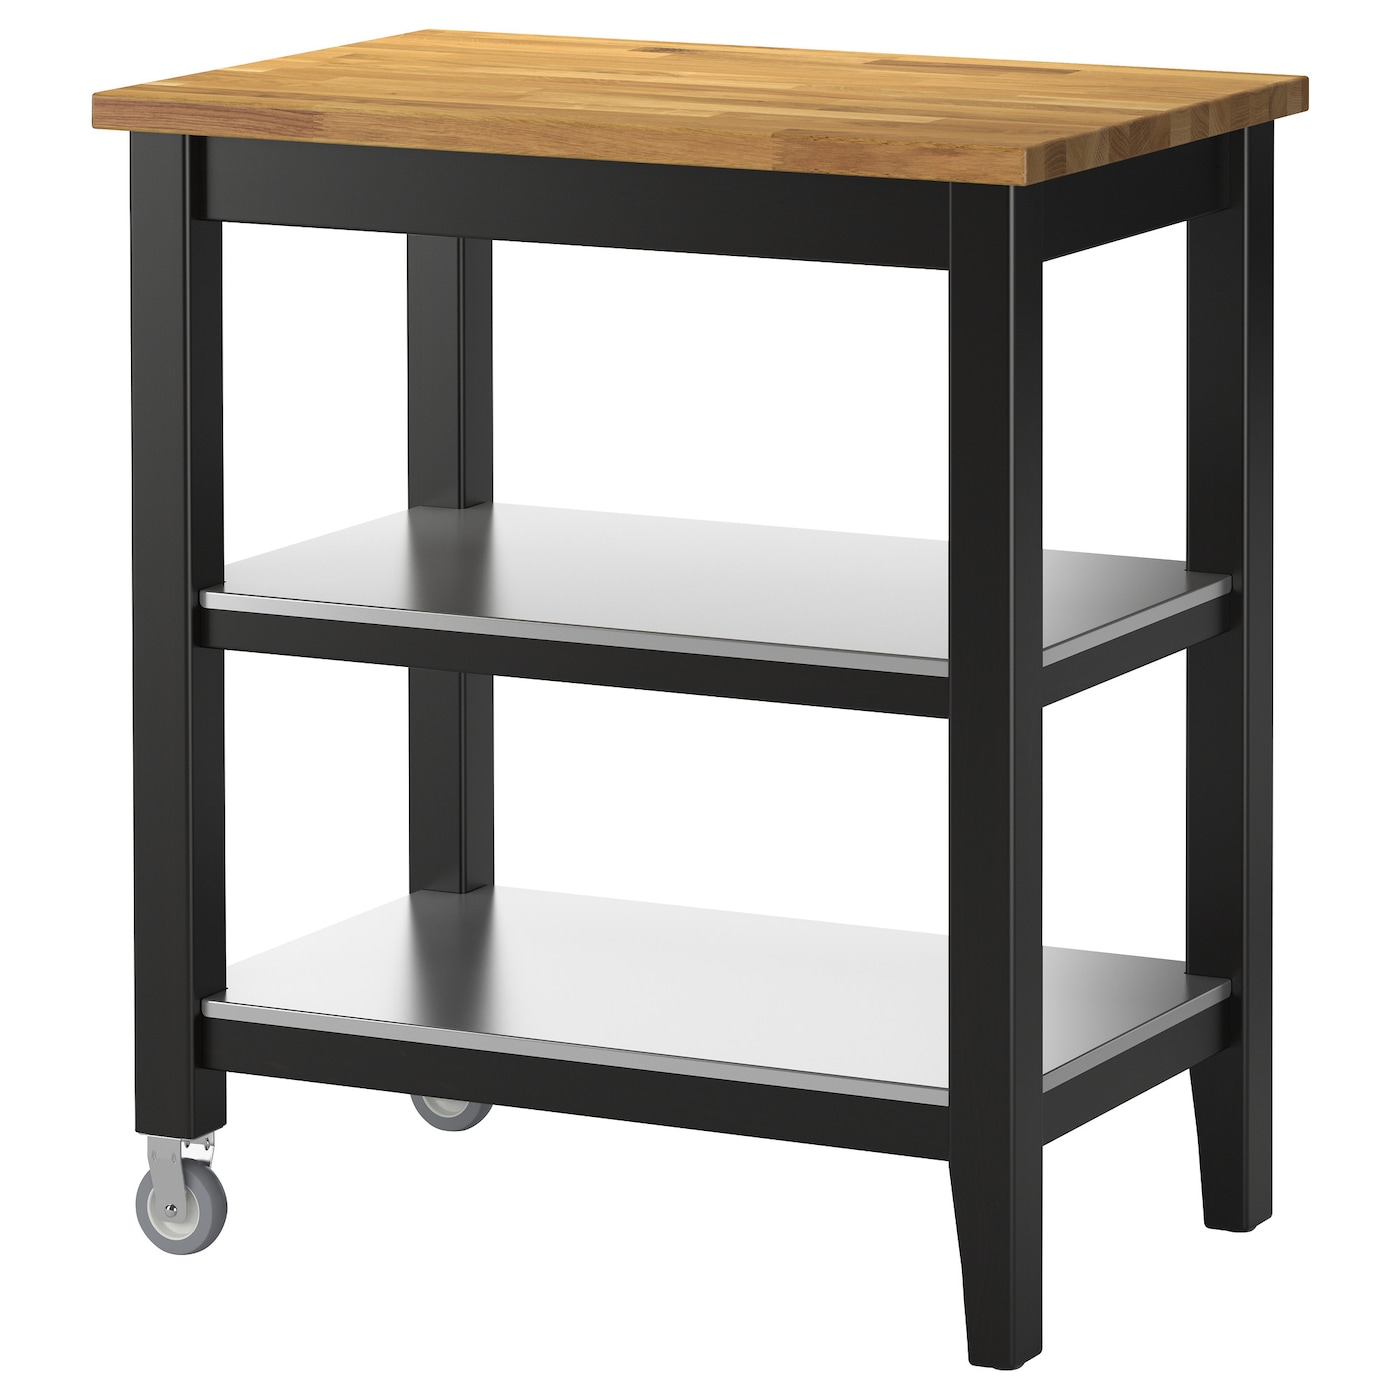 Uncategorized Kitchen Island Ikea kitchen islands butchers trolleys blocks ikea stenstorp trolley gives you extra storage in your kitchen